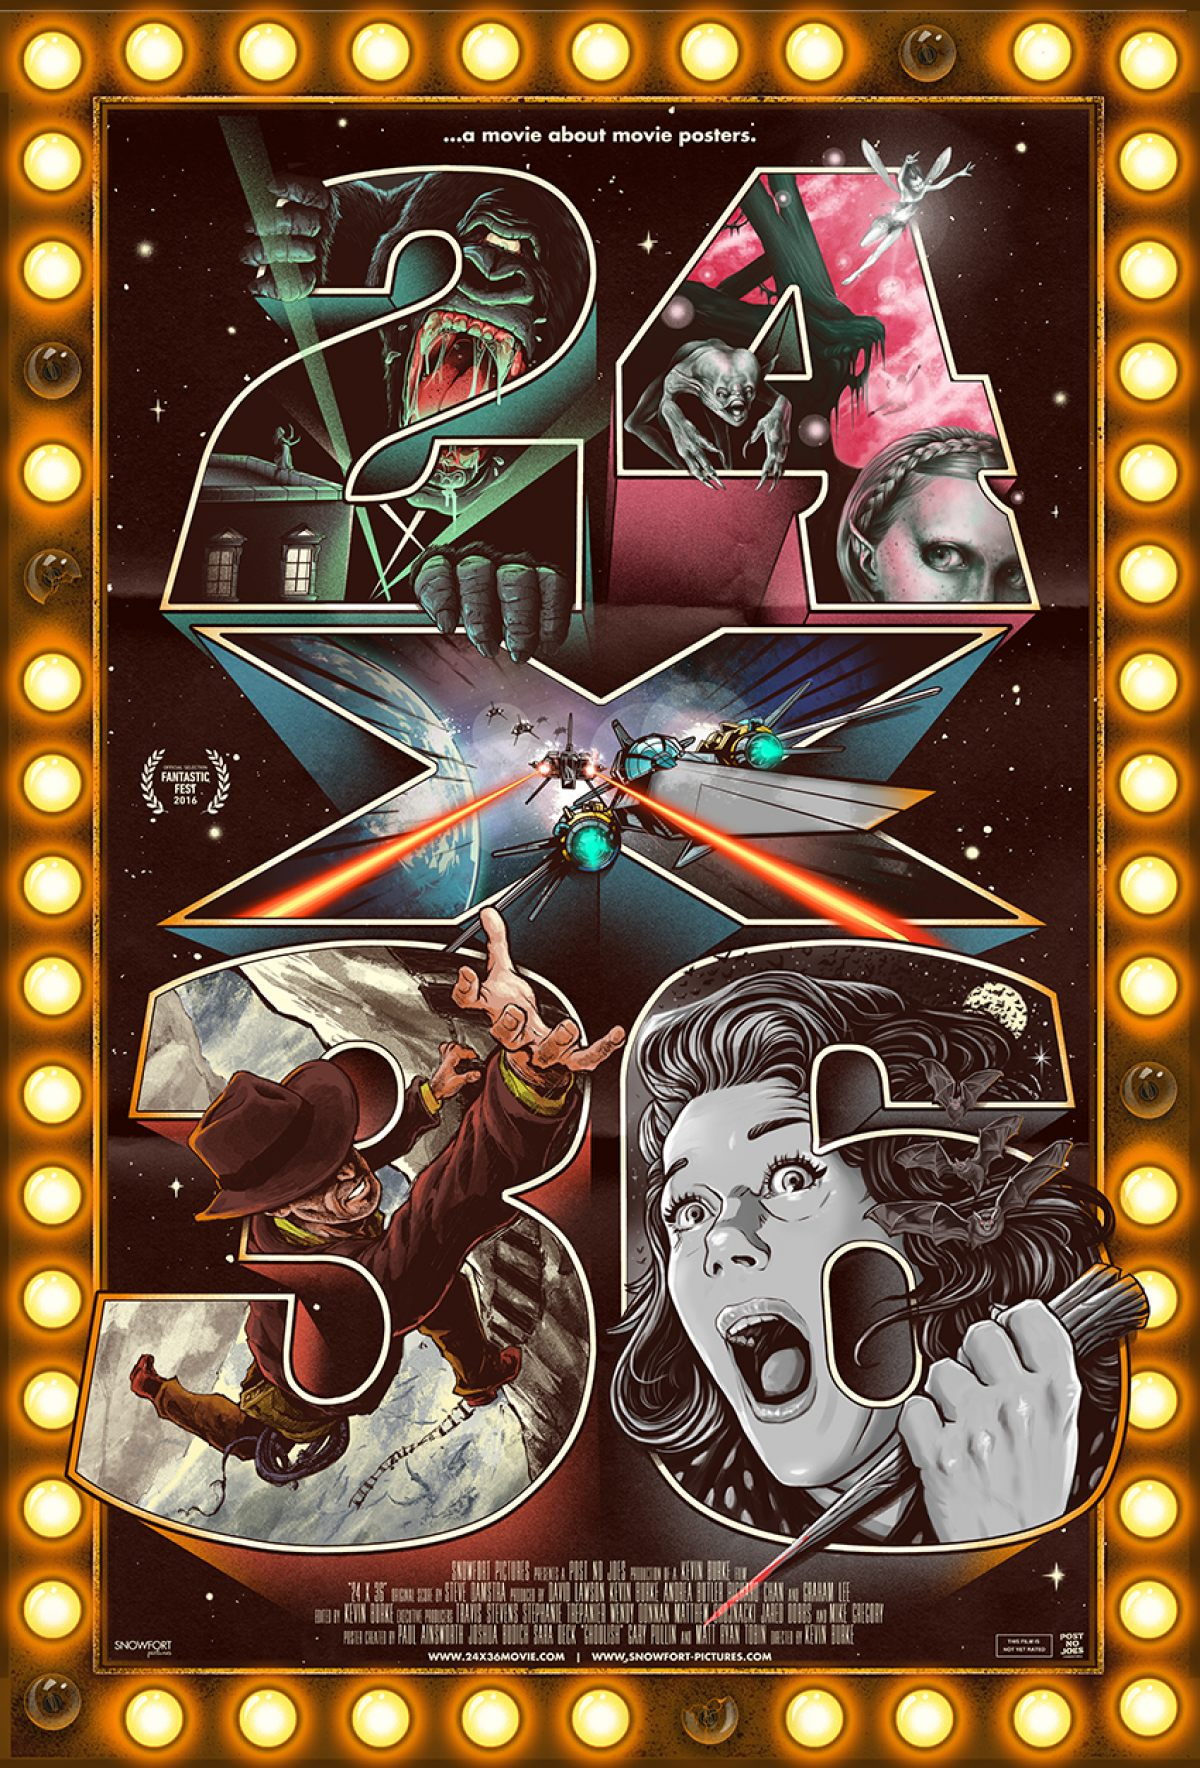 24x36 poster design - 24x36 A Movie About Movie Posters Poster